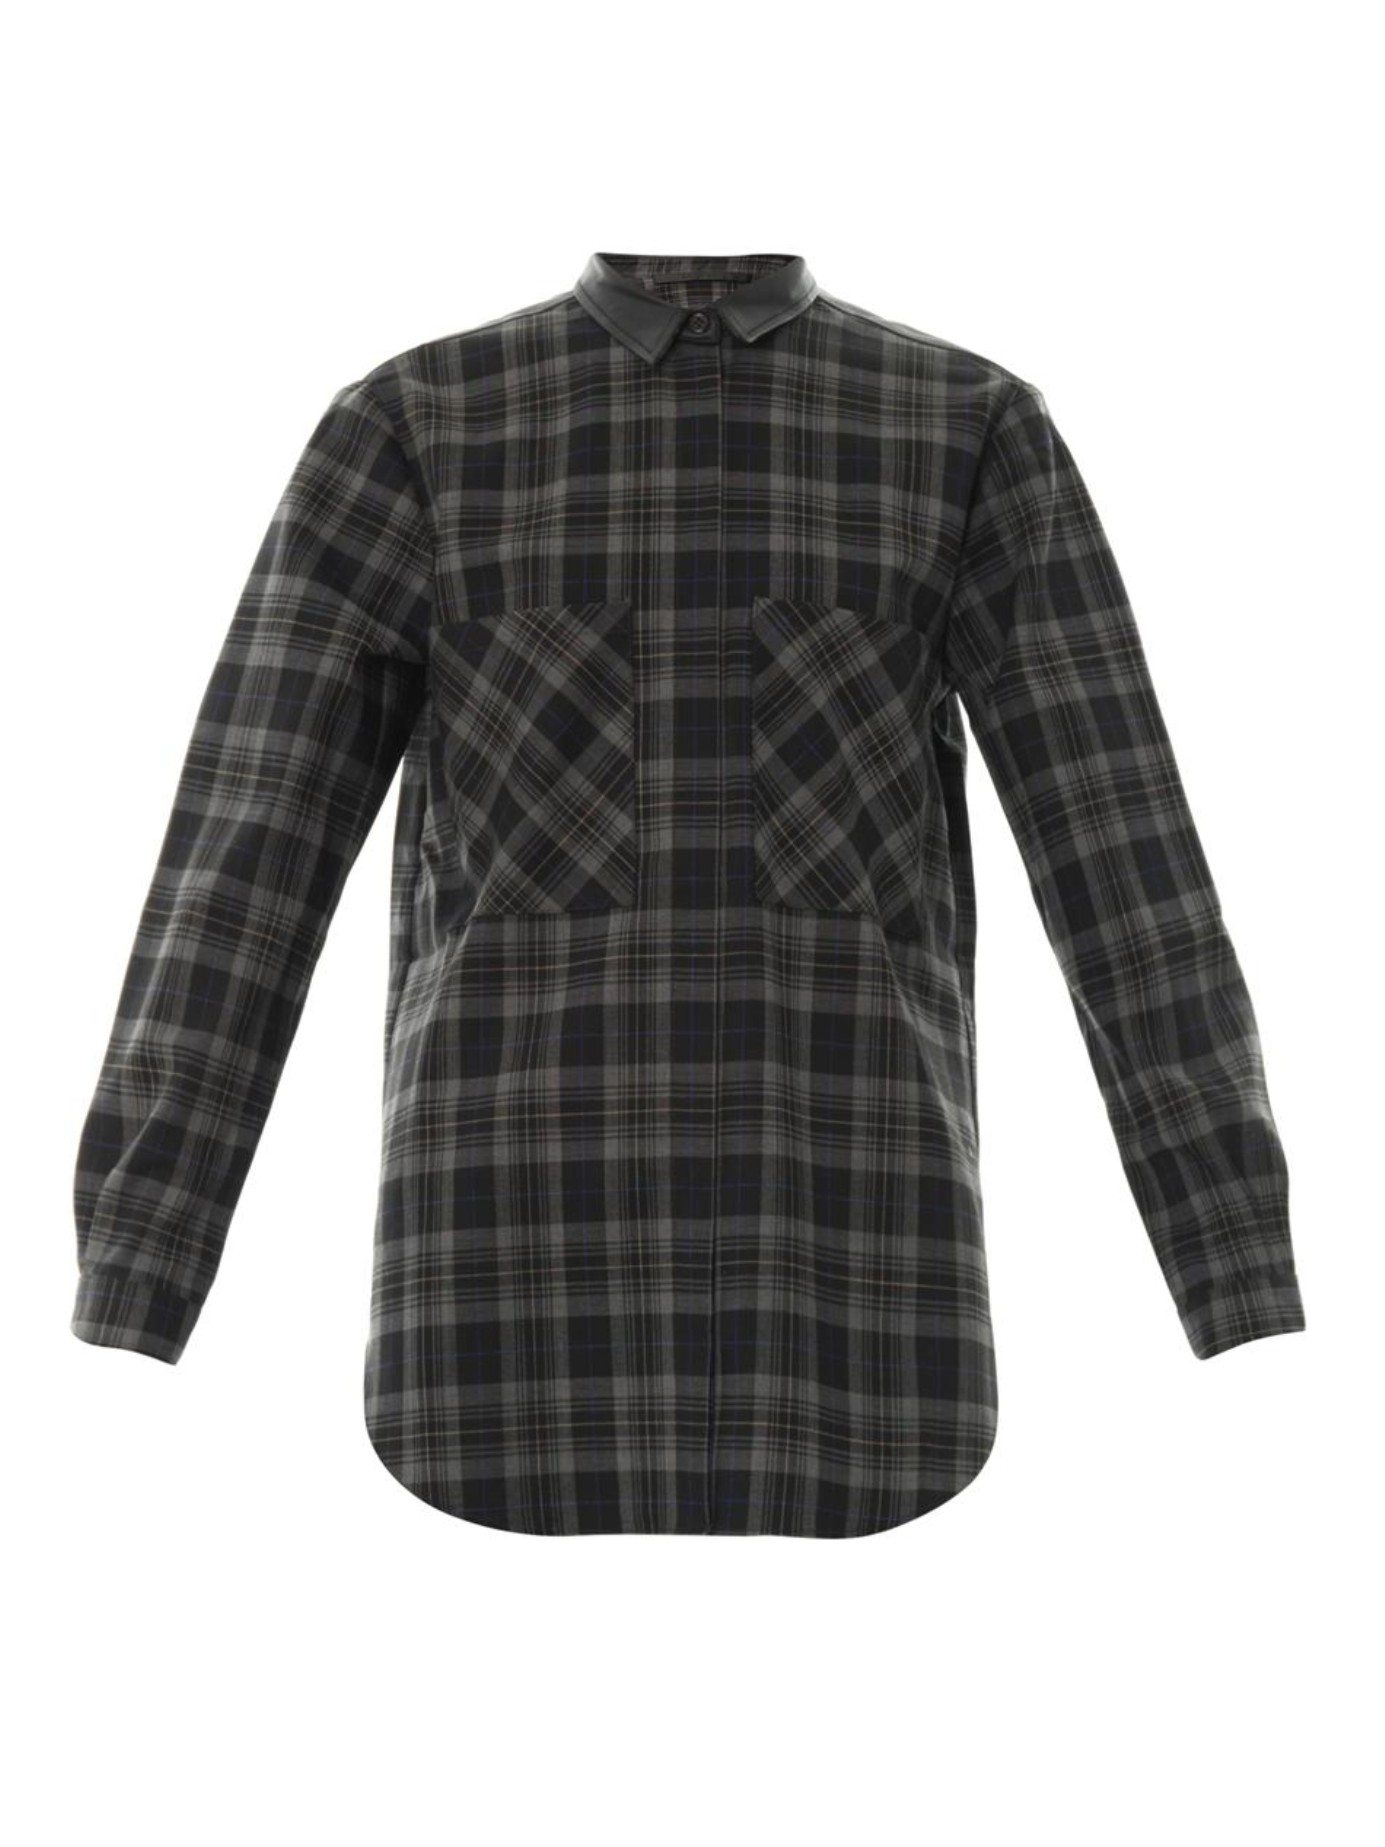 SHIRTS - Blouses Anne Vest 100% Guaranteed Cheap Online Where To Buy Cheap Real Outlet Countdown Package Buy Cheap Sneakernews Sale Big Sale UMl1tu